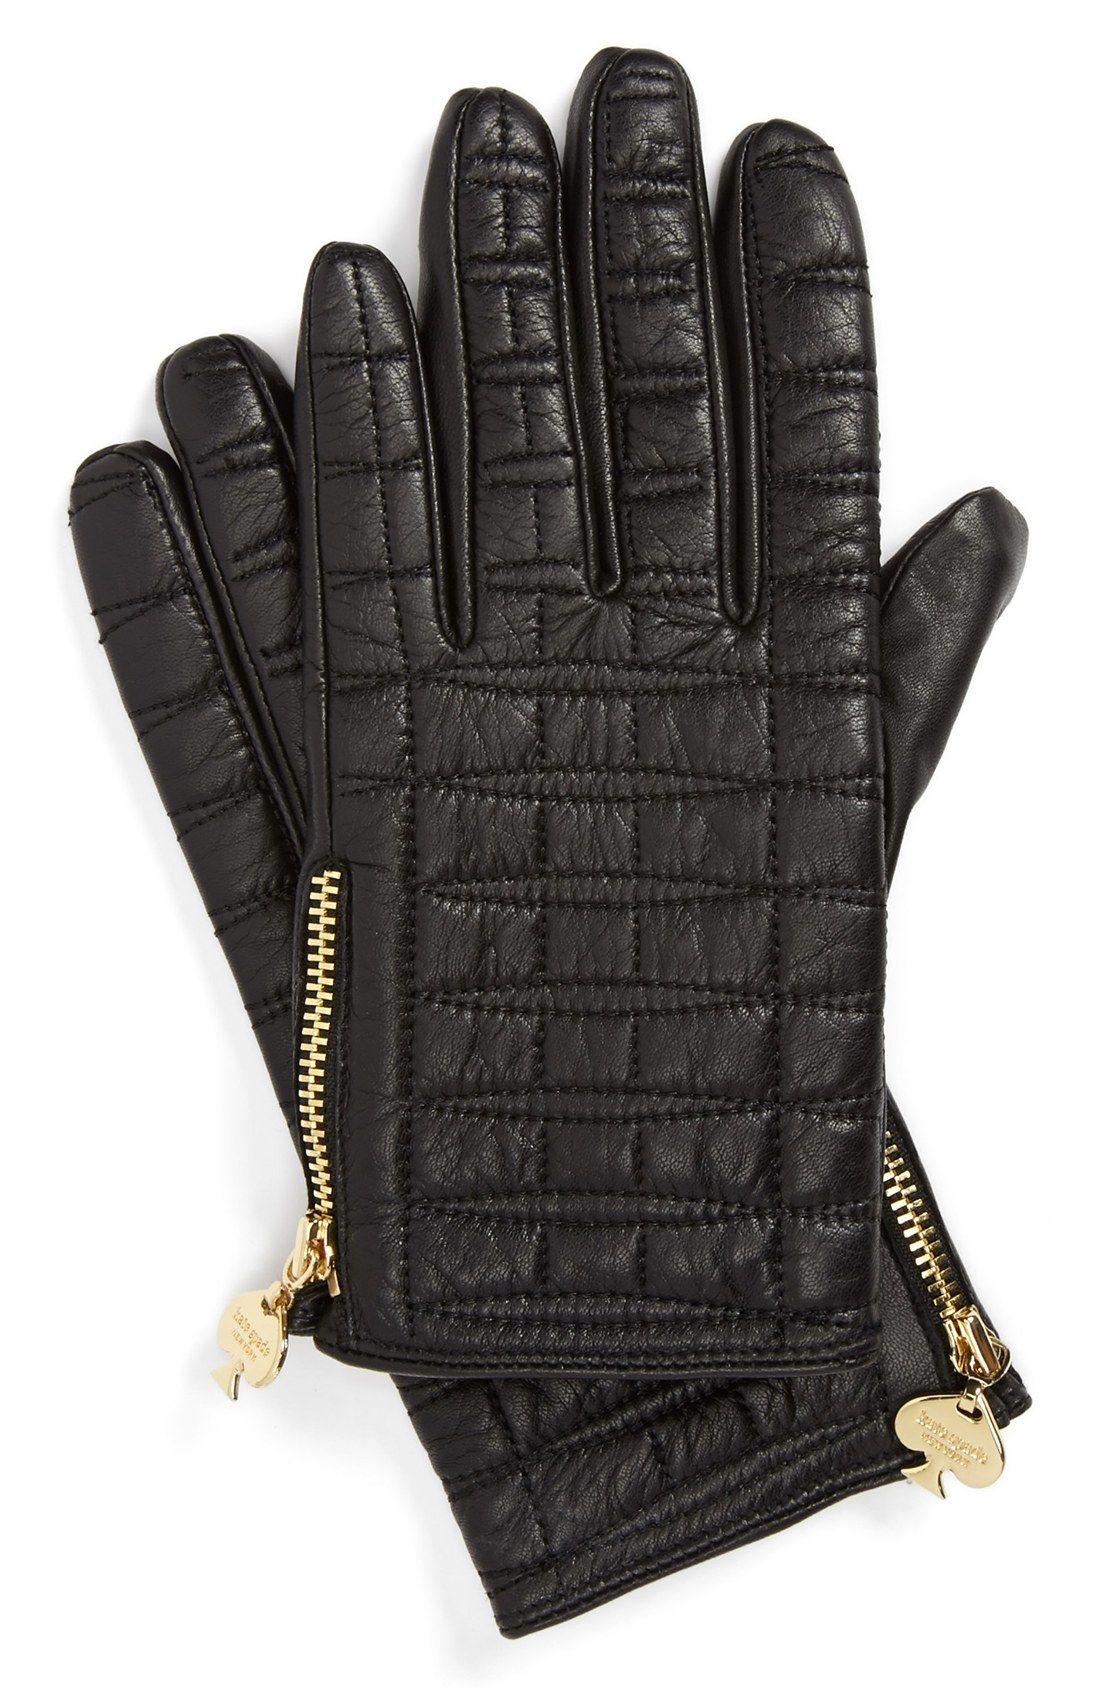 Black leather gloves meaning - Crushing On This Buttery Soft Kate Spade Quilted Leather Gloves